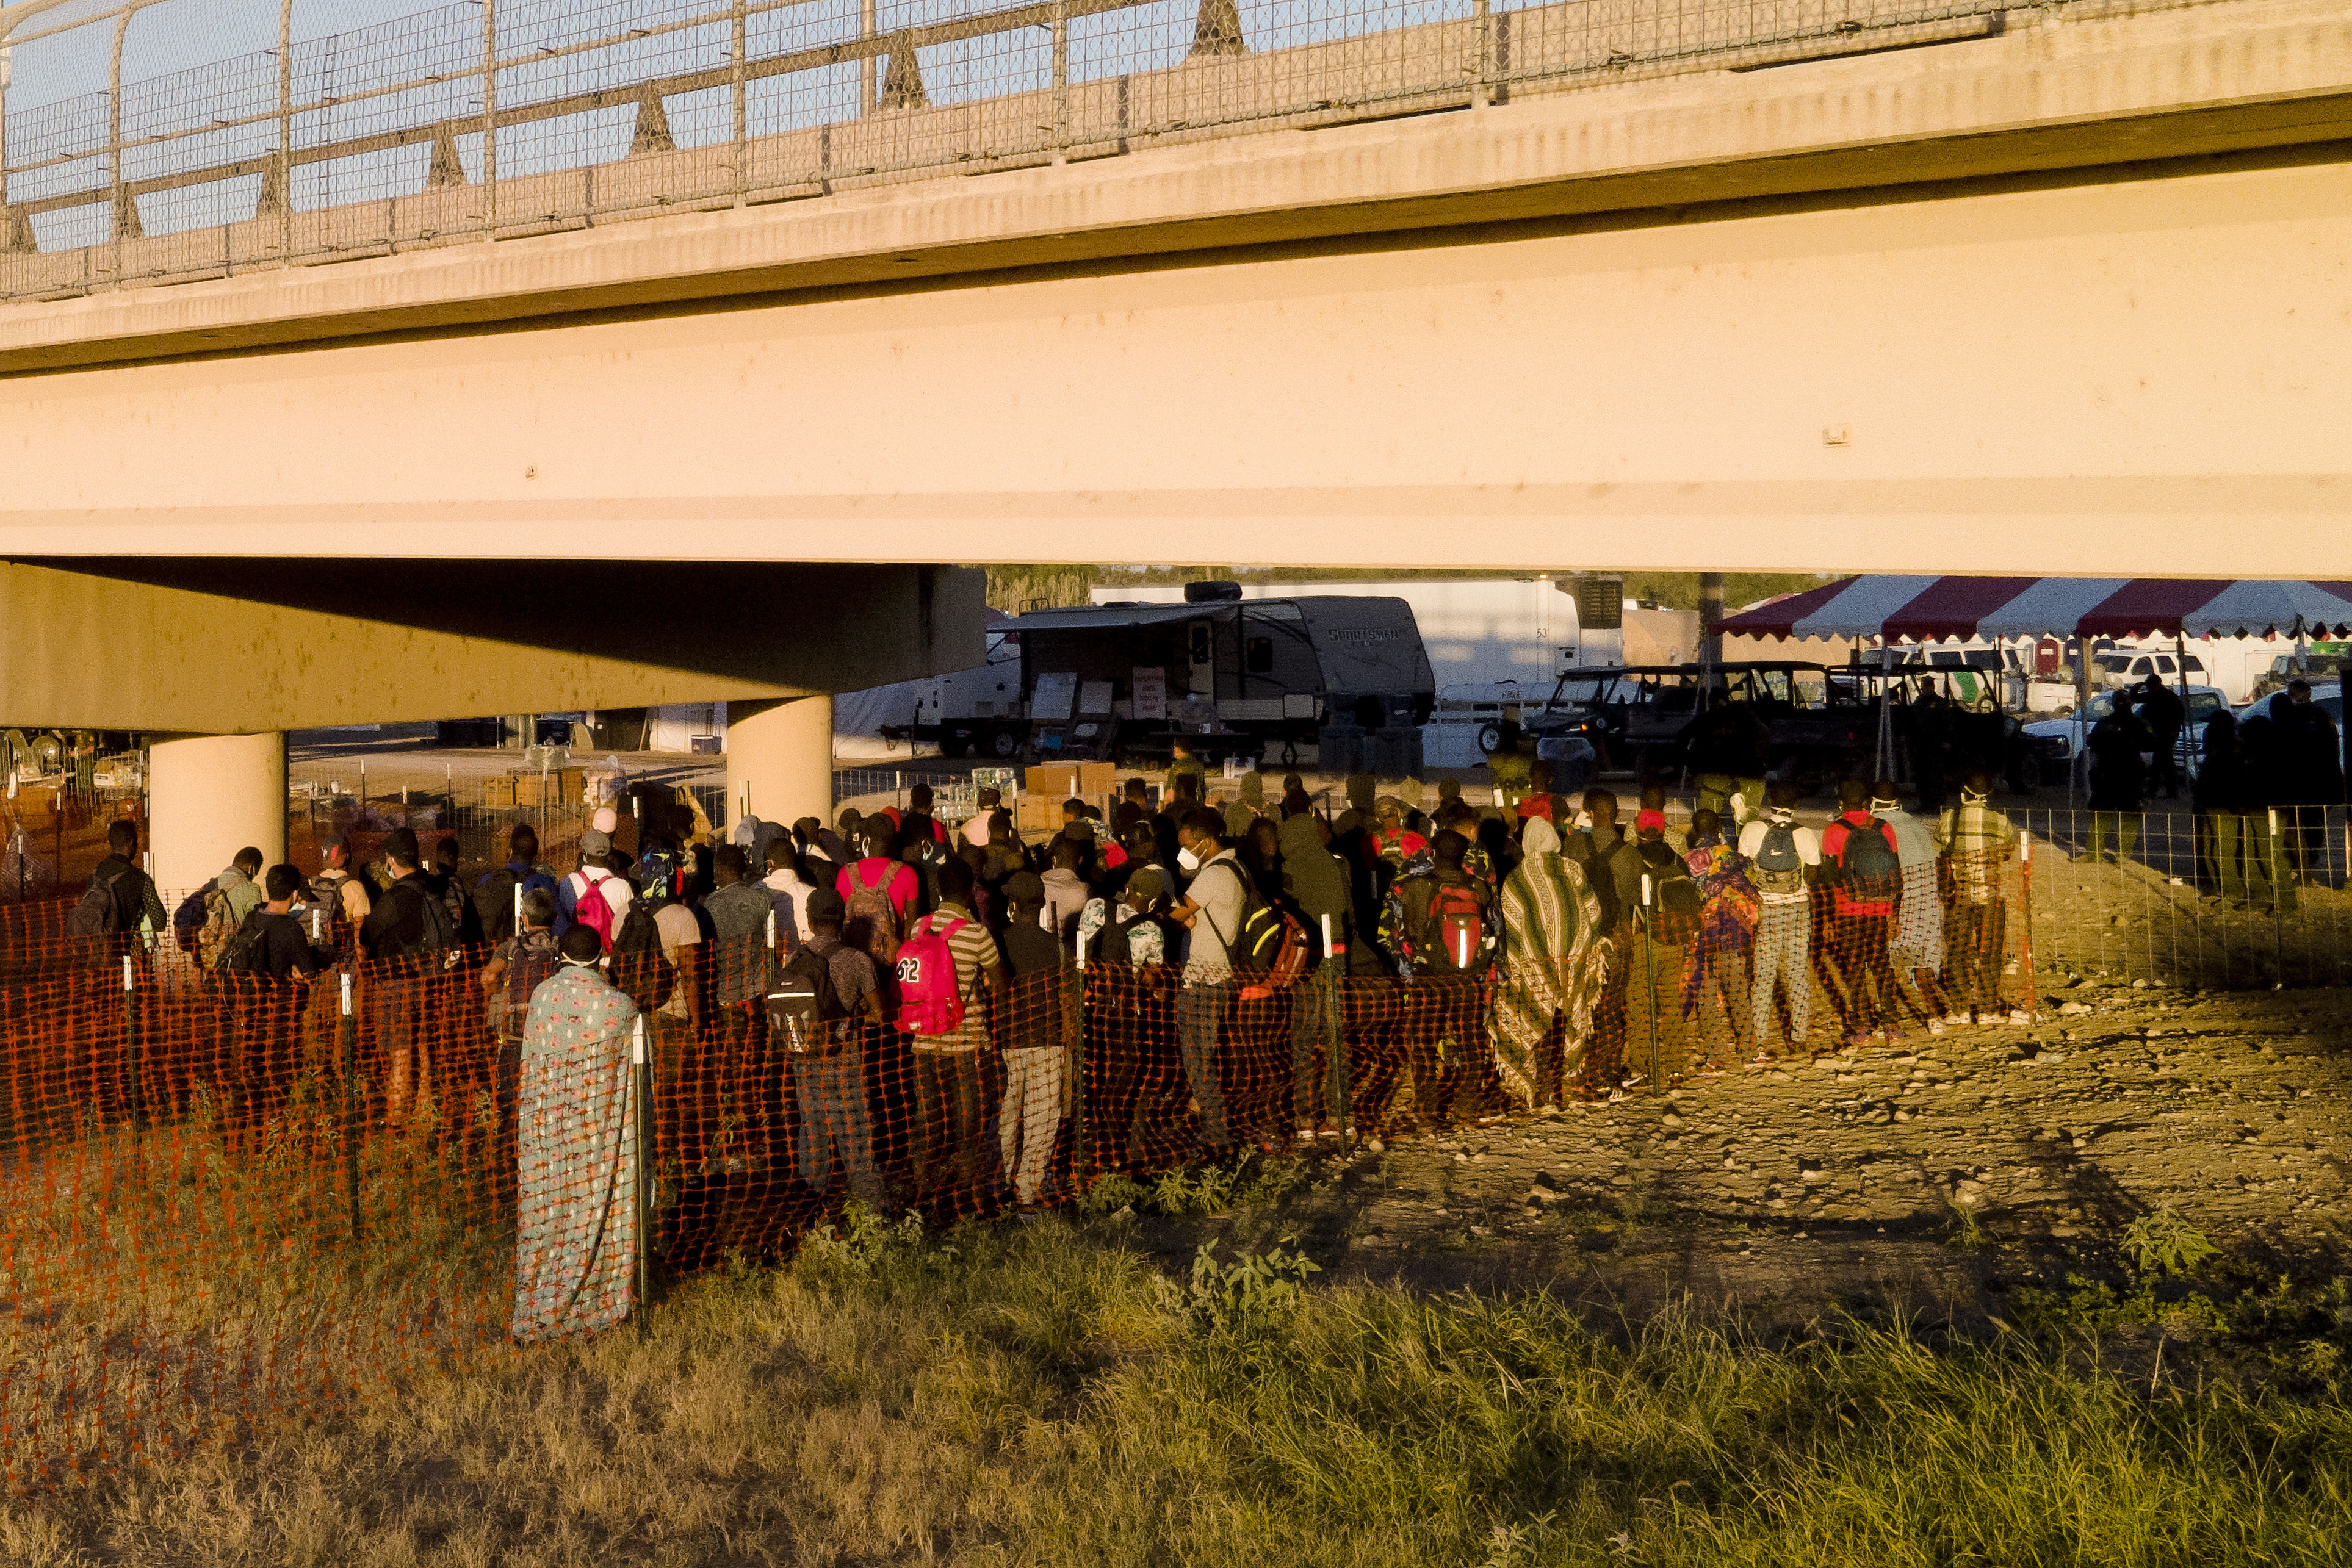 Migrants, many from Haiti, wait in lines to board buses under the Del Rio International Bridge, Friday, Sept. 24, 2021, in Del Rio, Texas.